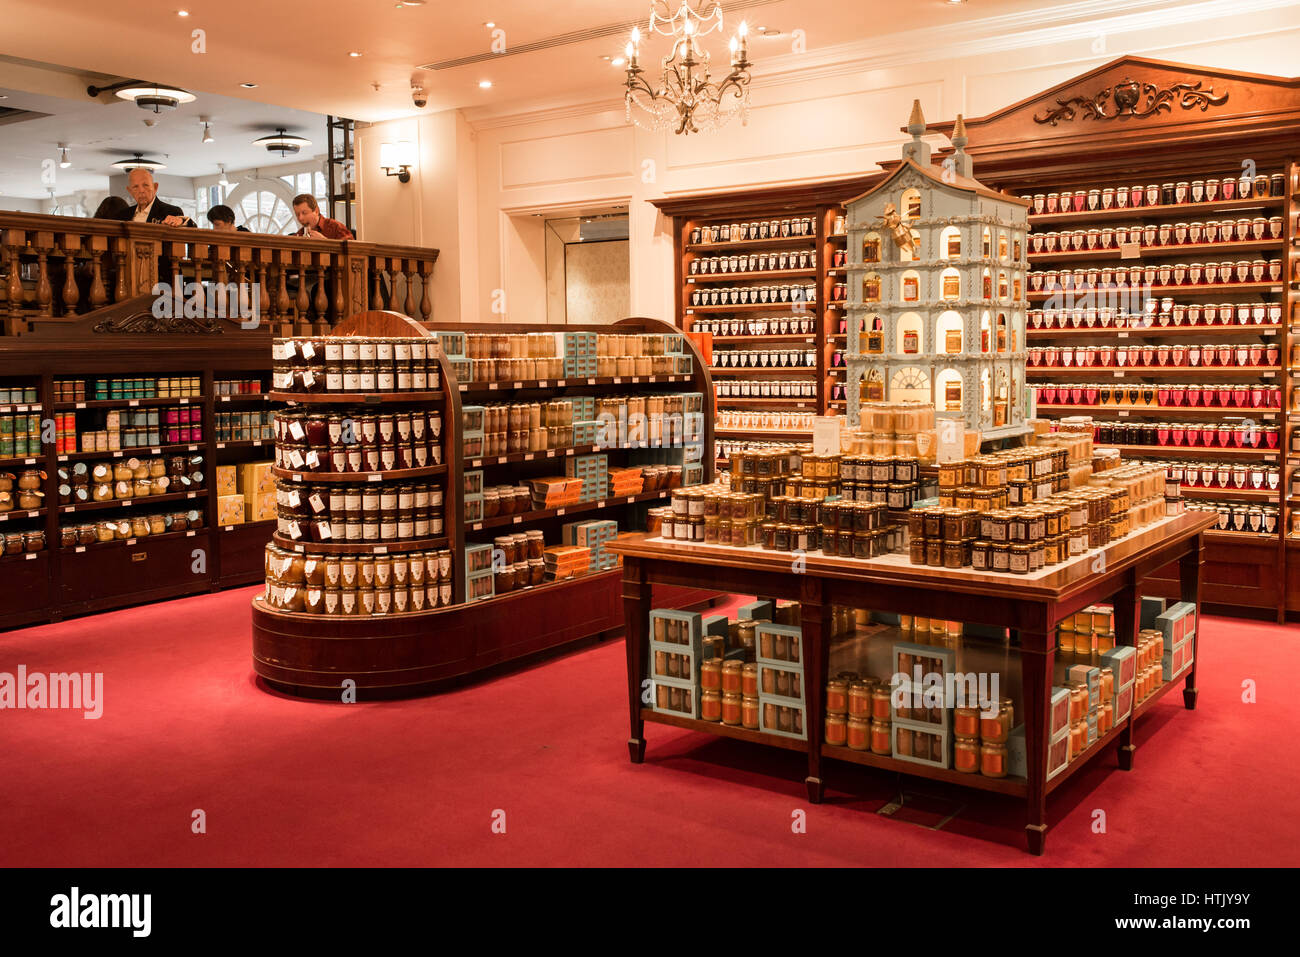 Interiors of Fortnum & Mason. Fortnum & Mason is an upmarket department store renowned for teas and wine - Stock Image